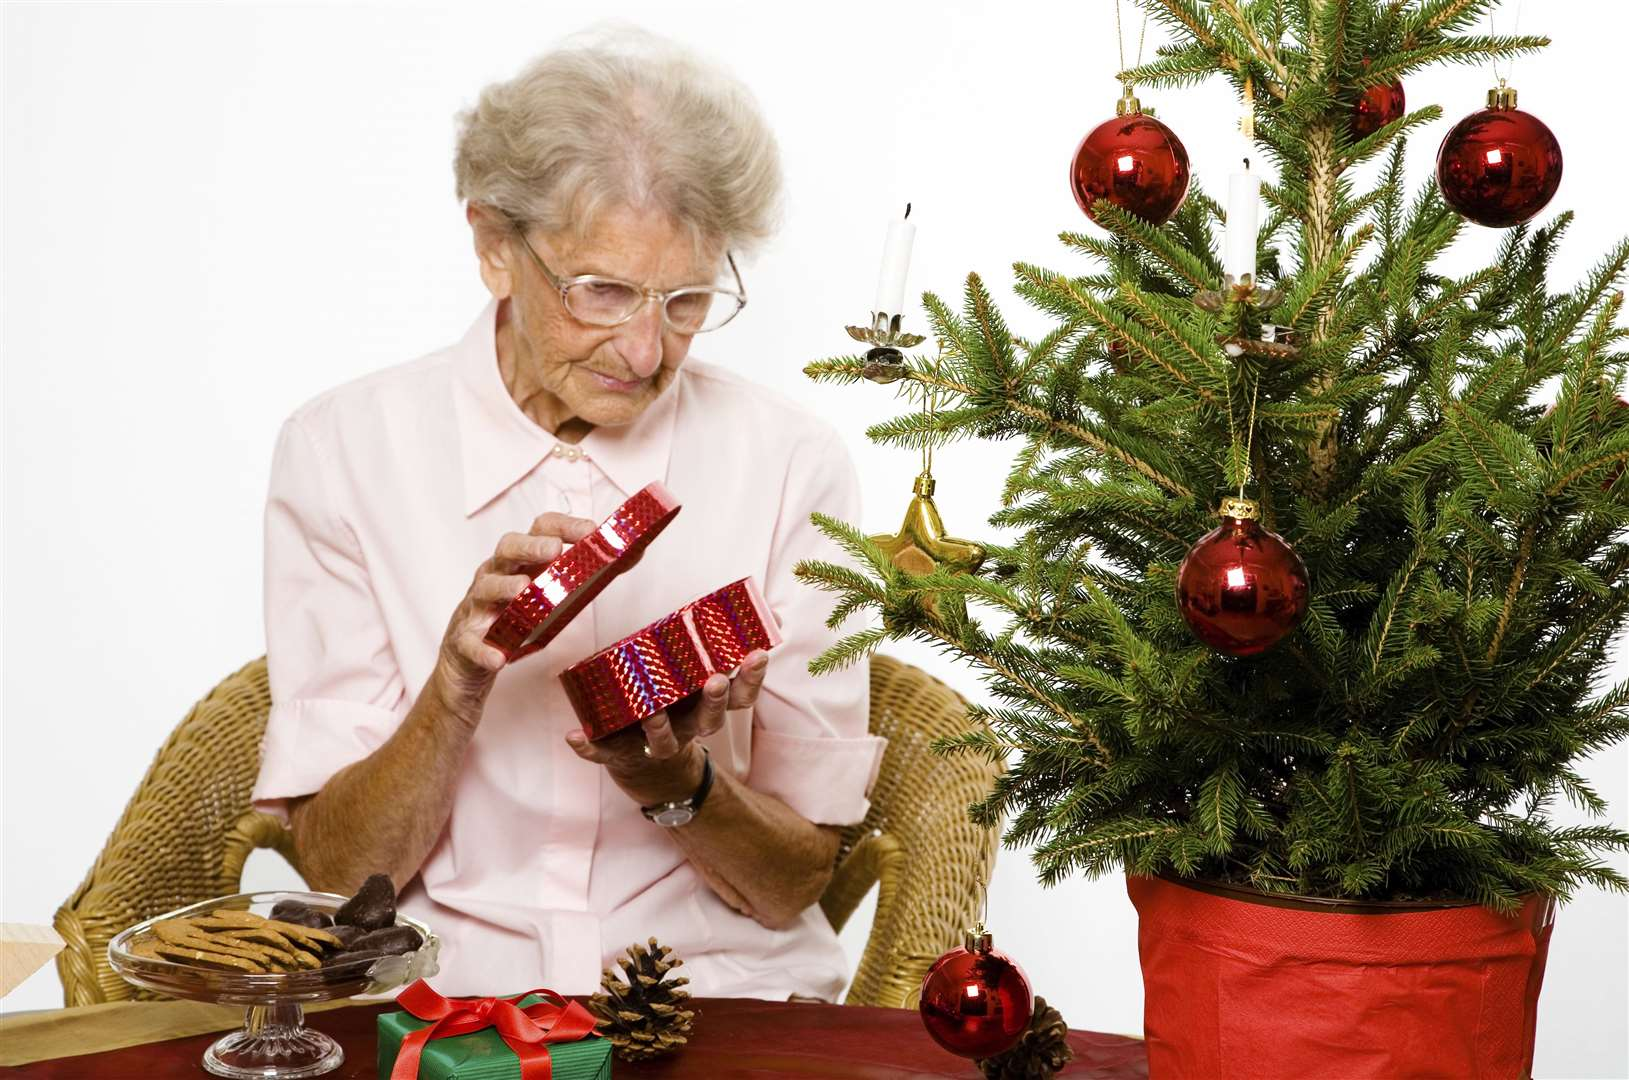 Christmas could be very lonely for lots of people this year. Picture: Getty Images/iStockphoto